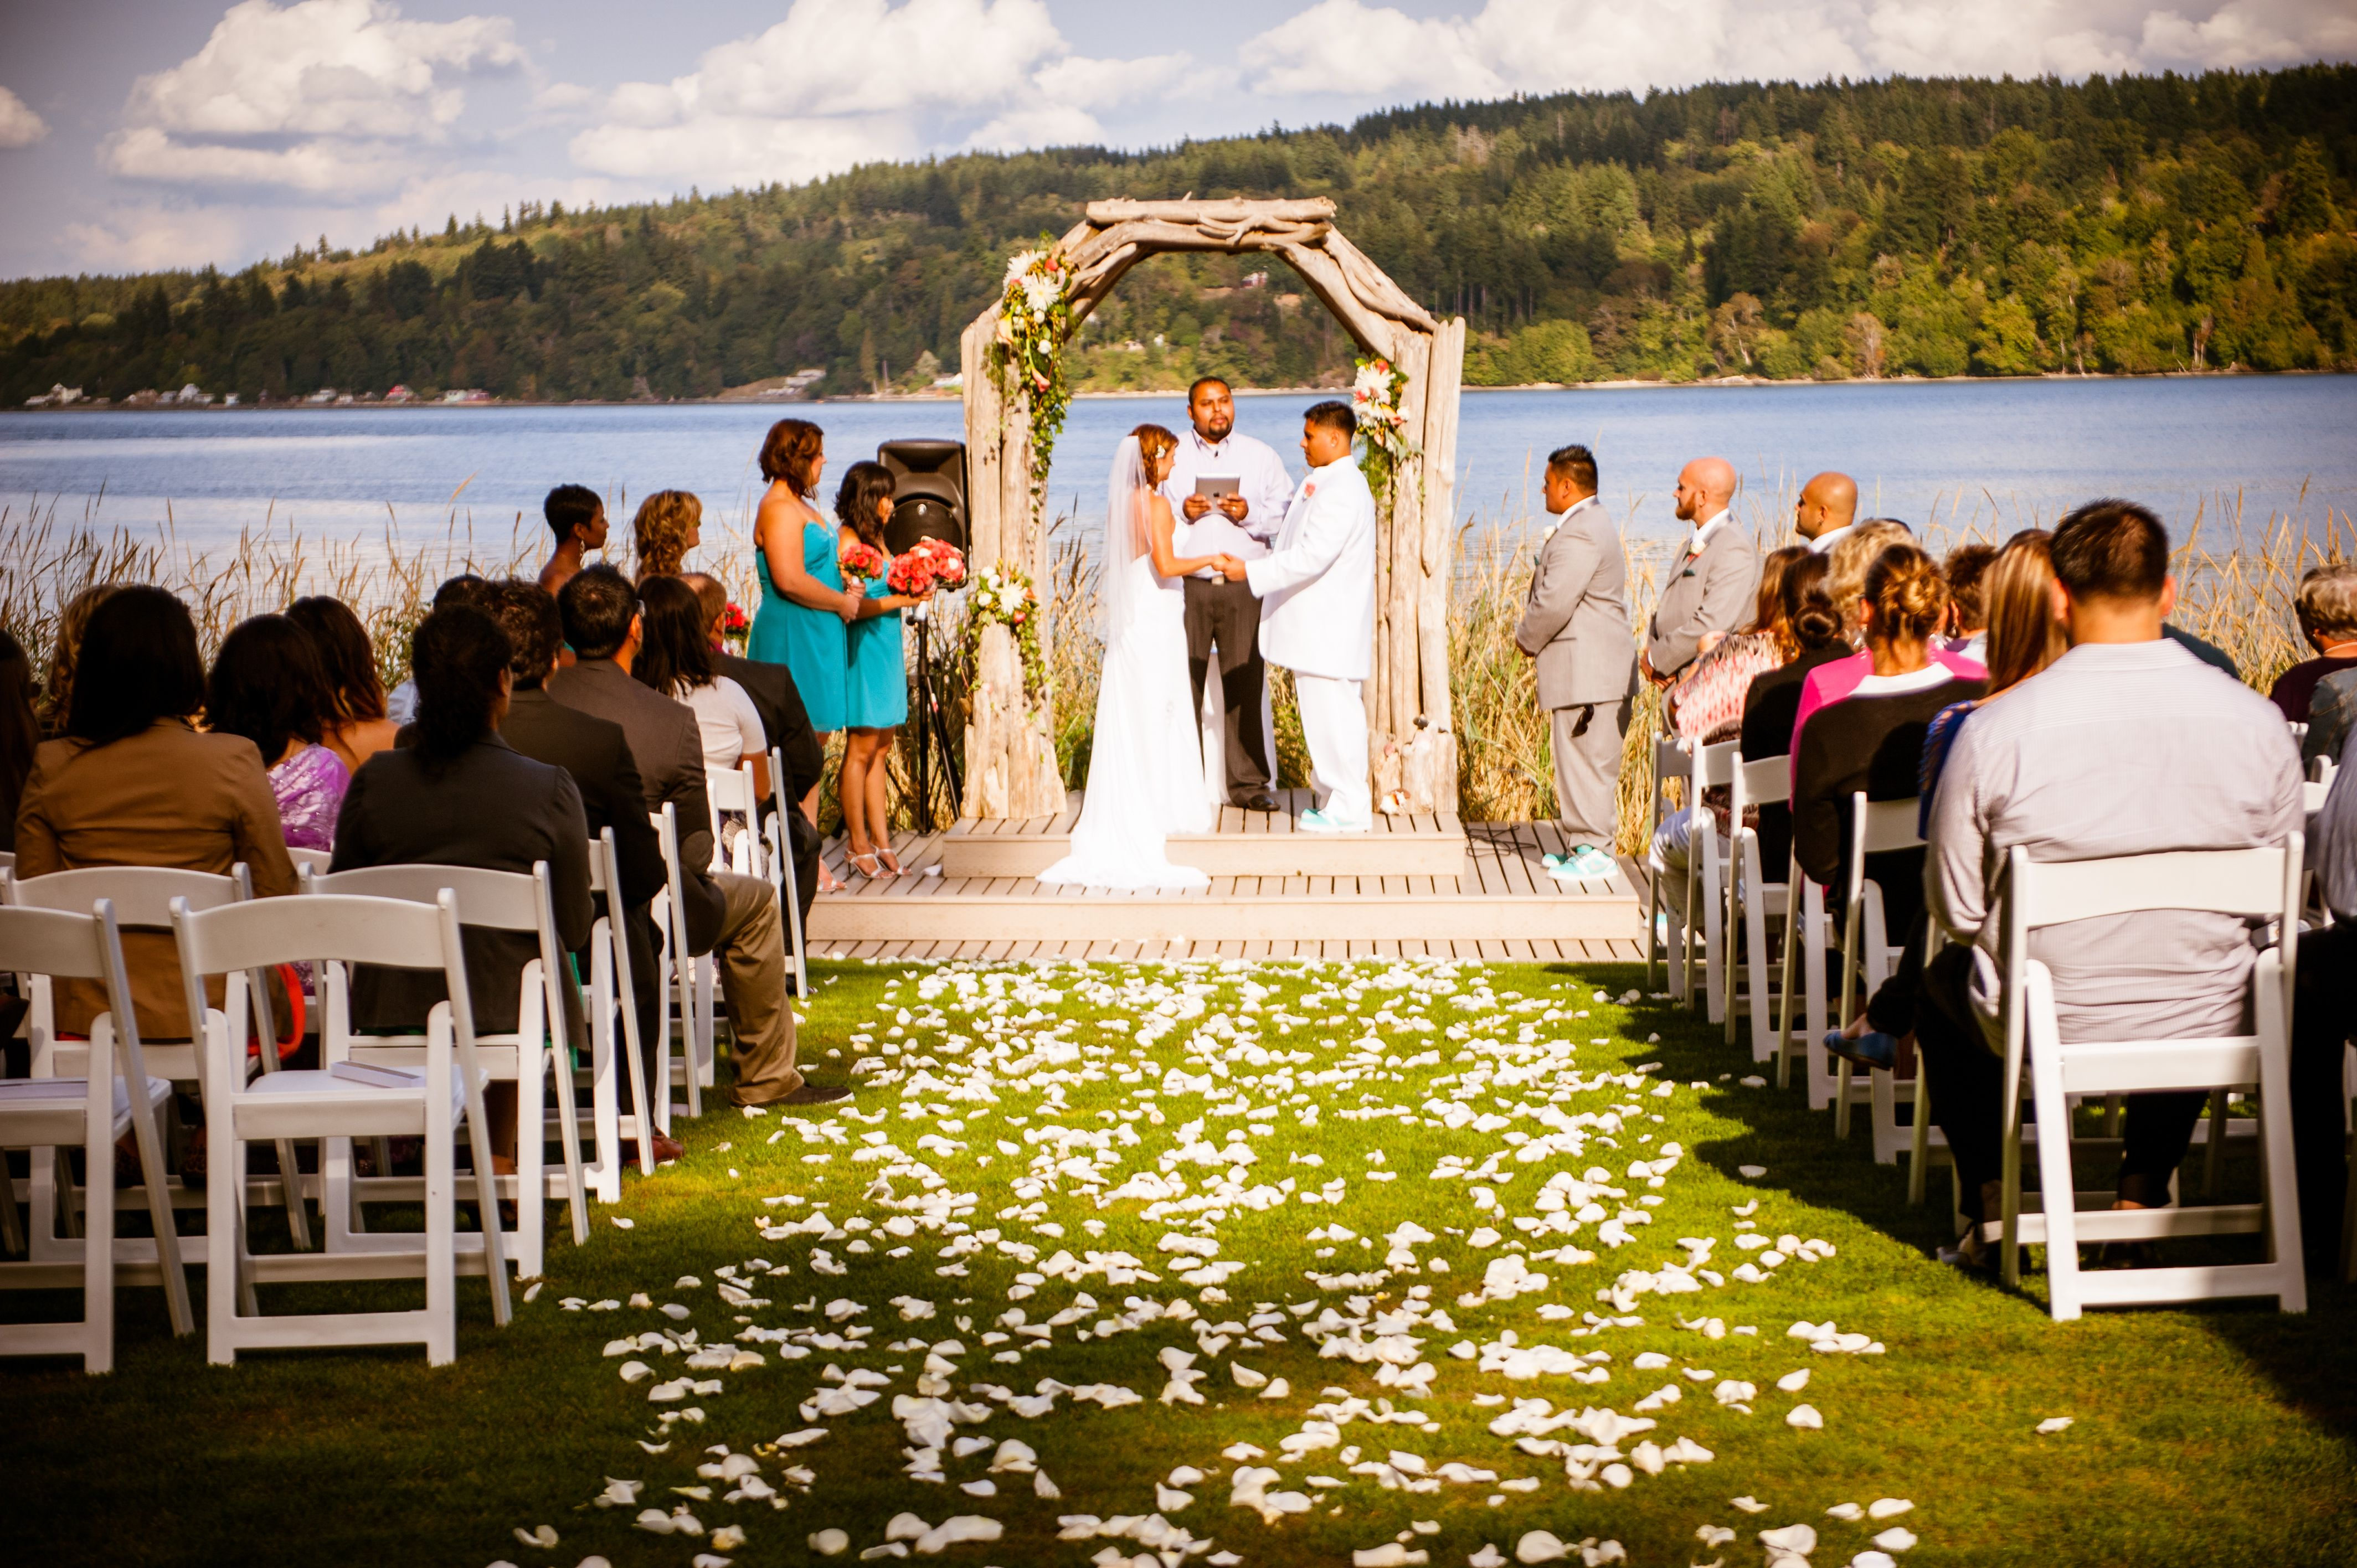 Perfect wedding picture idea best places to get married for Destination wedding location ideas